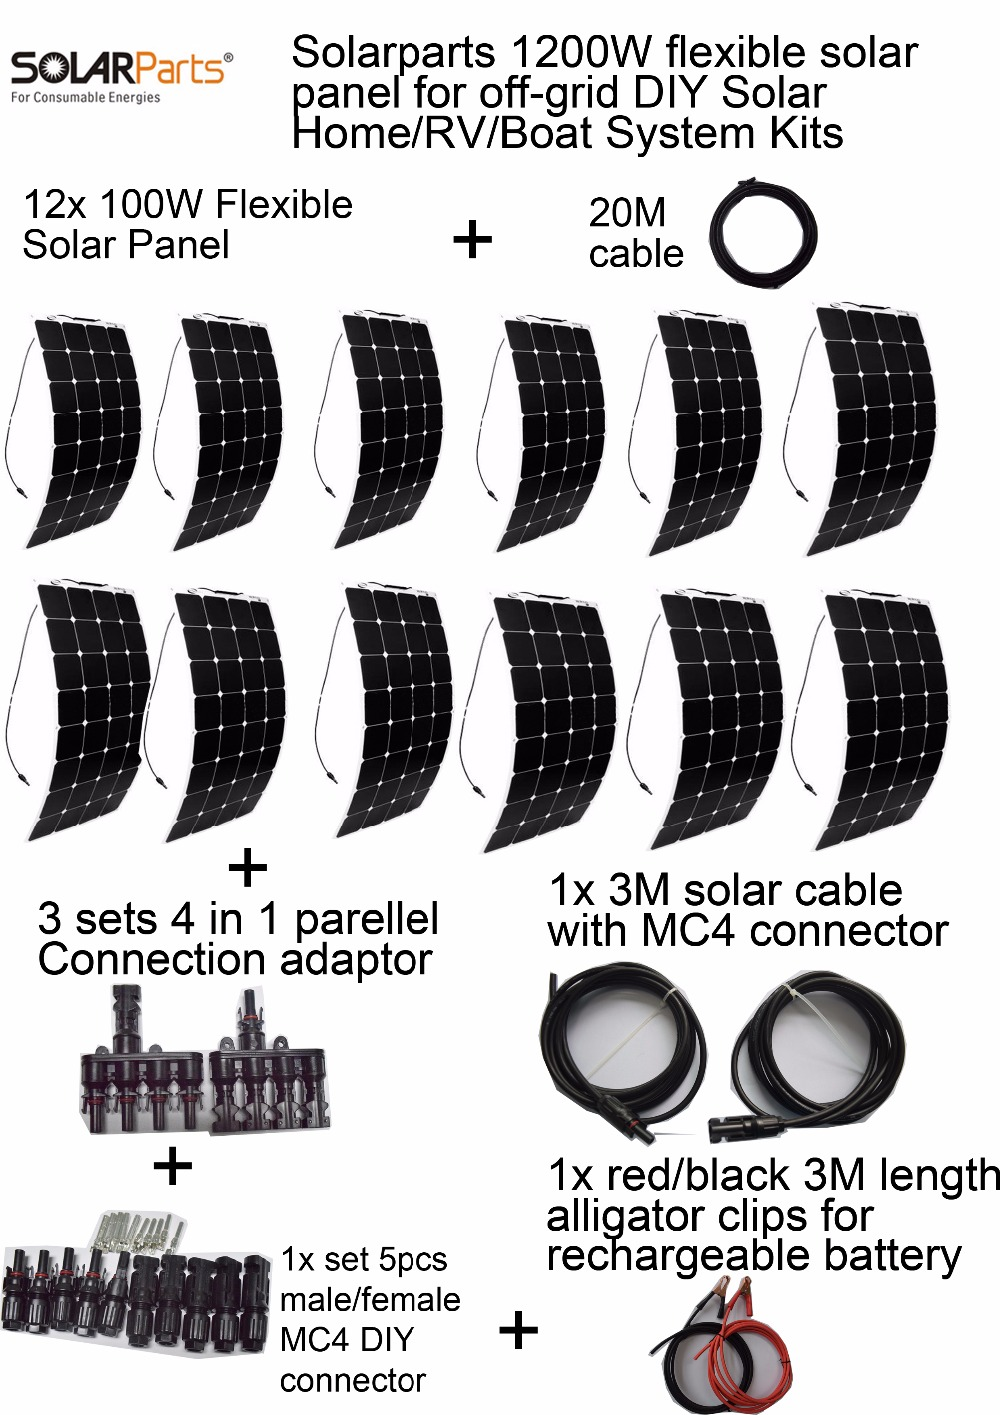 BOGUANG off-grid Solar System KITS 1200W flexible solar panel 3 sets 4 in1 MC4 adaptor cable full set connecting cable solar solarparts off grid solar system kits 800w flexible solar panel 1pcs 60a controller 2kw inverter 2 sets 4 in1 mc4 adaptor cable